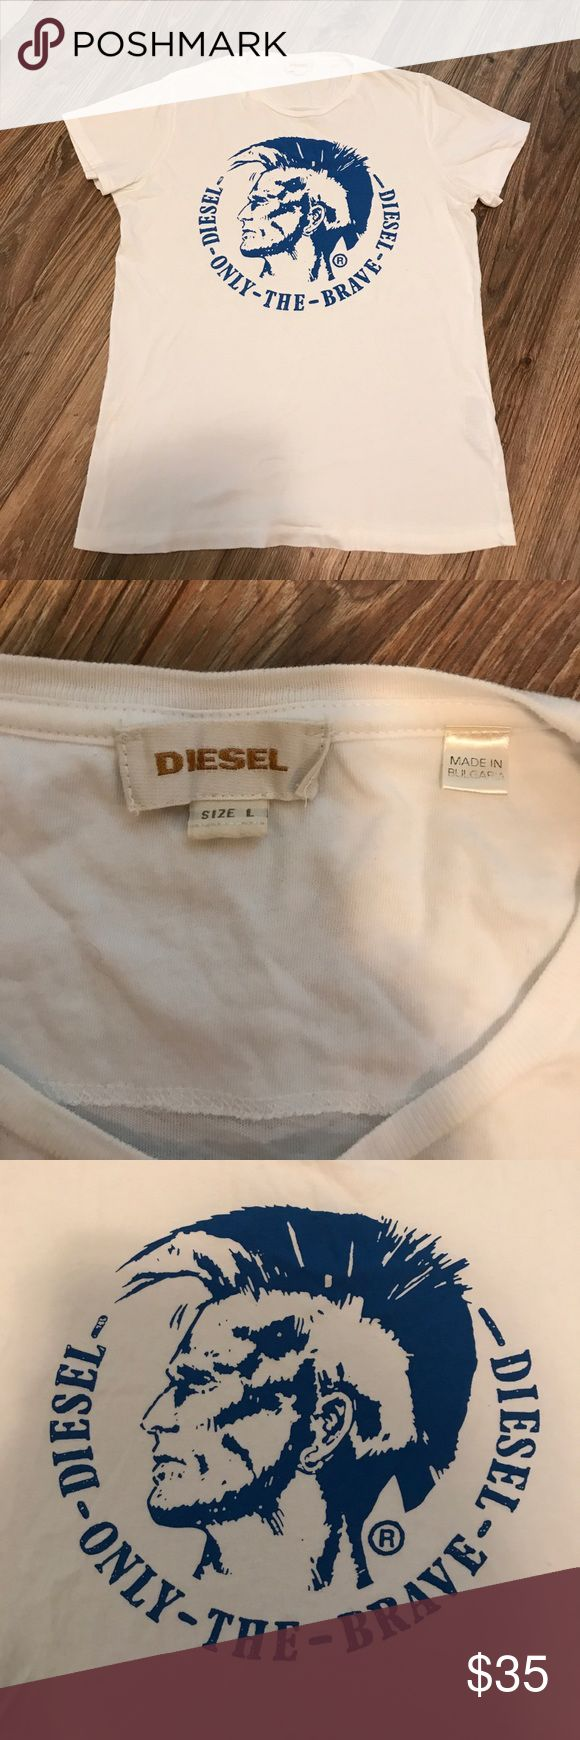 Pre owned diesel t shirt size large Preowned diesel T-shirt size large in great preowned condition color is white with blue diesel logo Diesel Shirts Tees - Short Sleeve